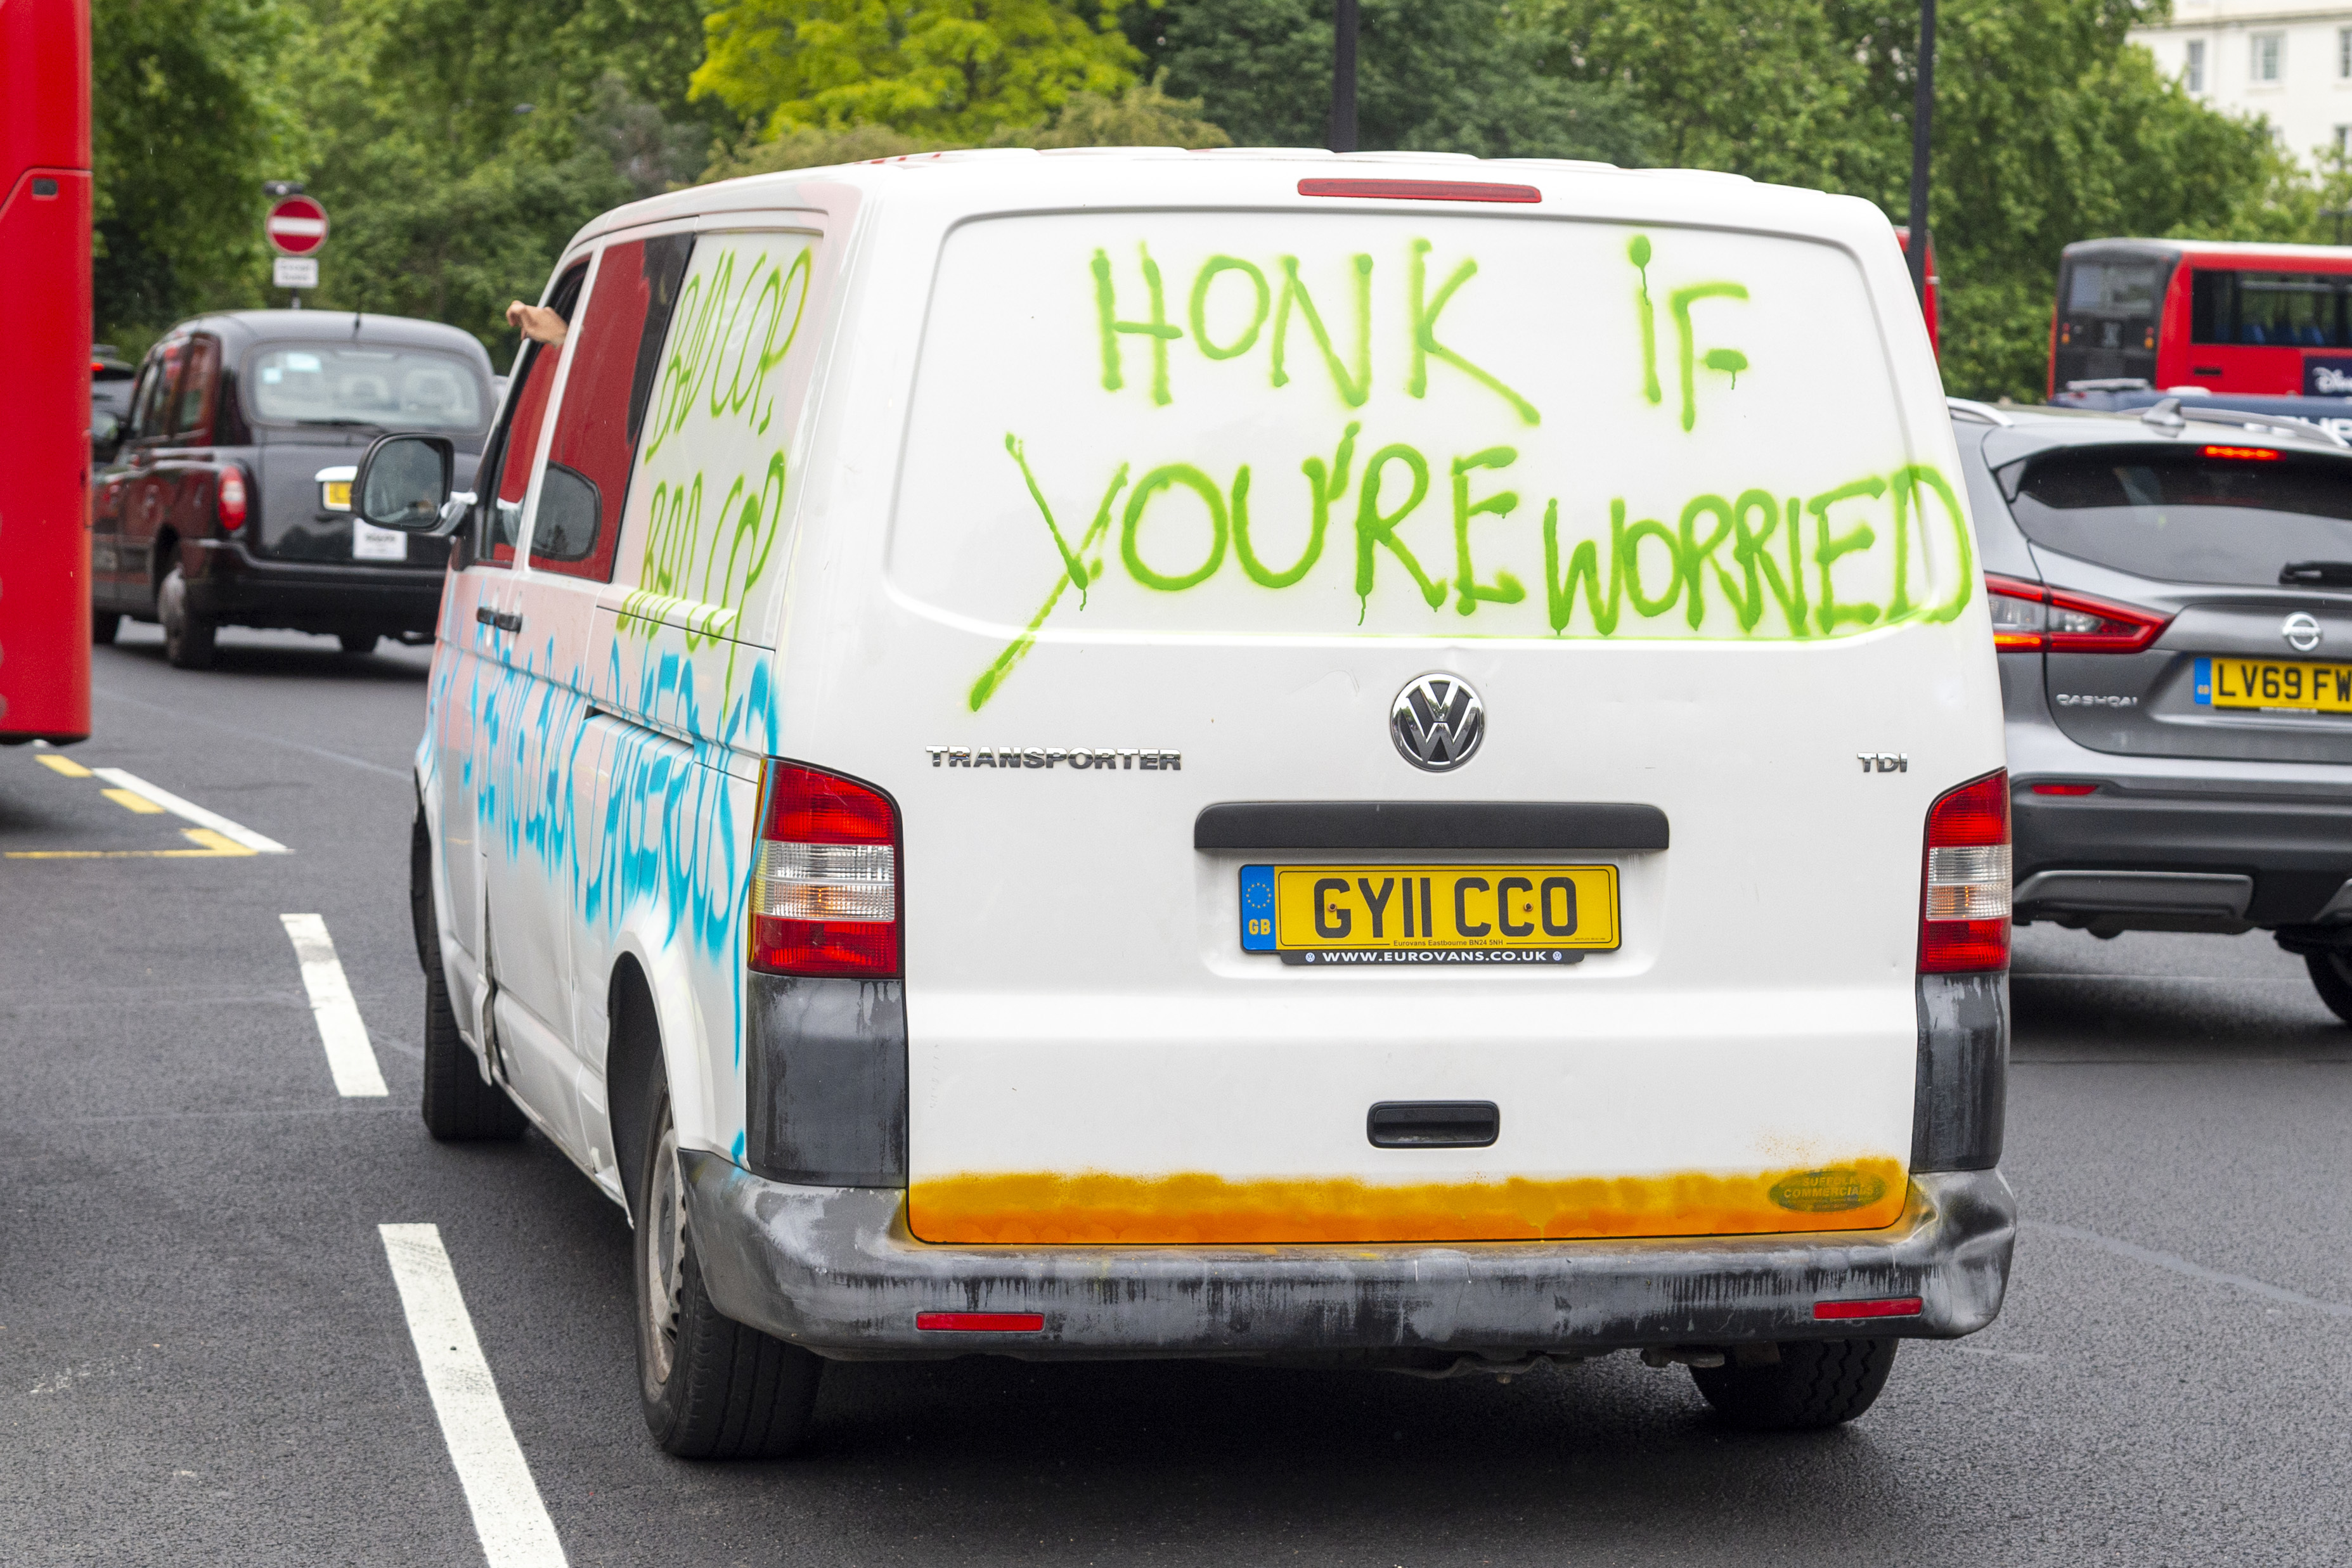 A van with �Honk if you�re worried' written on it during the Black Lives Matter protest at Hyde Park. Several protest have been spur by the recent killing of George Floyd, a black man who died in police custody in Minneapolis, U.S.A. (Photo by Dave Rushen / SOPA Images/Sipa USA)